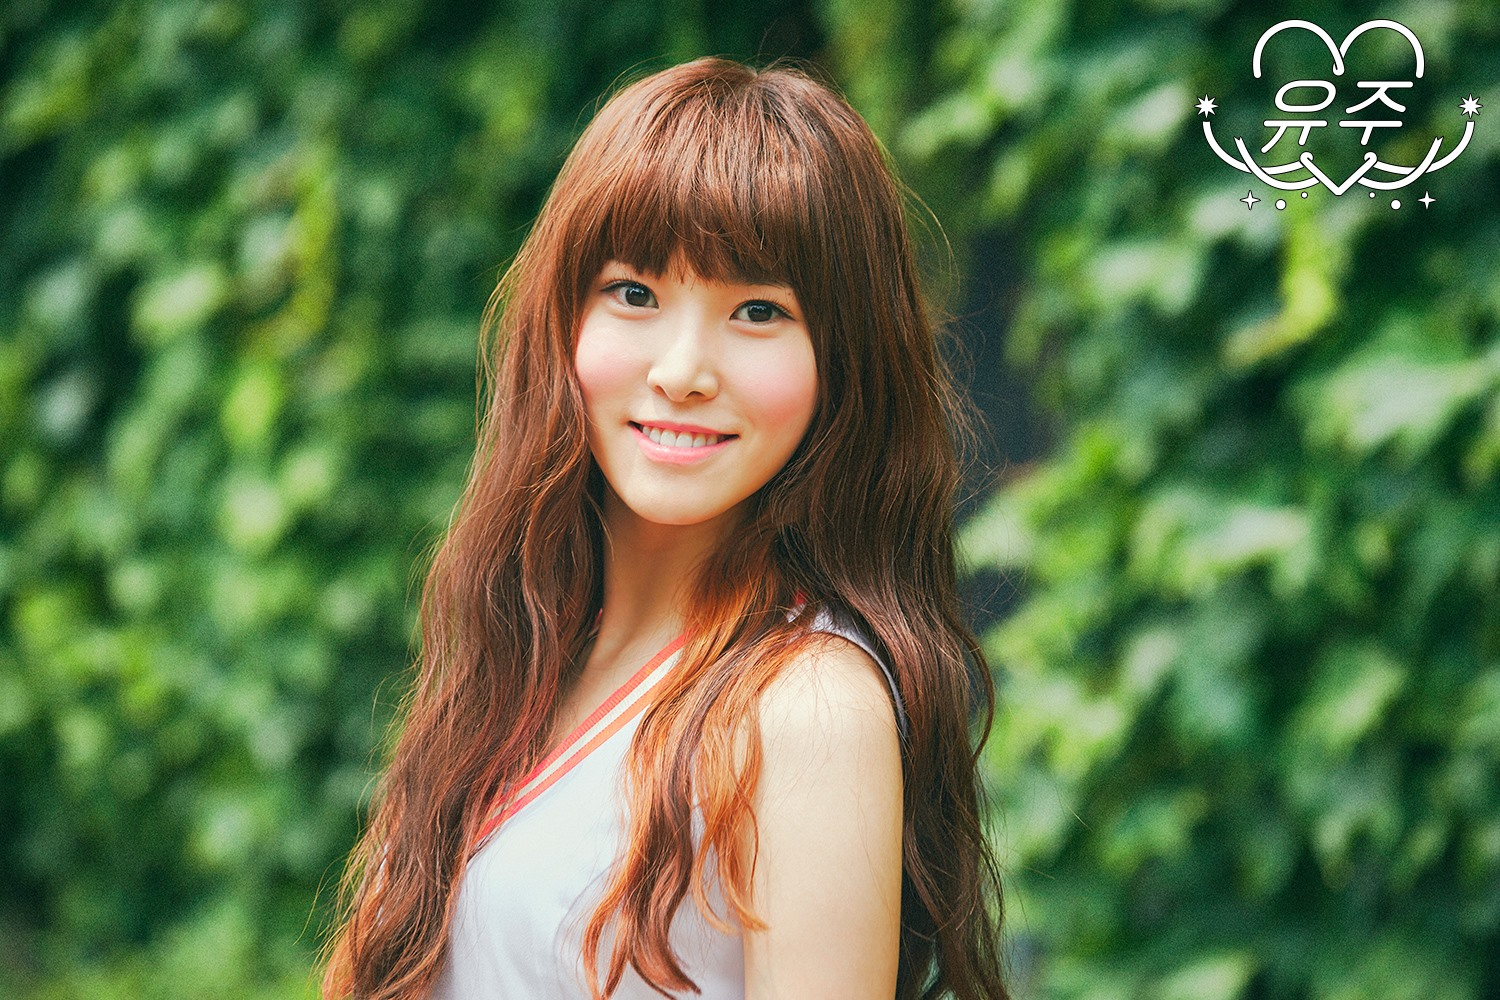 GFRIEND's Yuju Predicted To Be The Next Hit Idol-Actress By MV Director